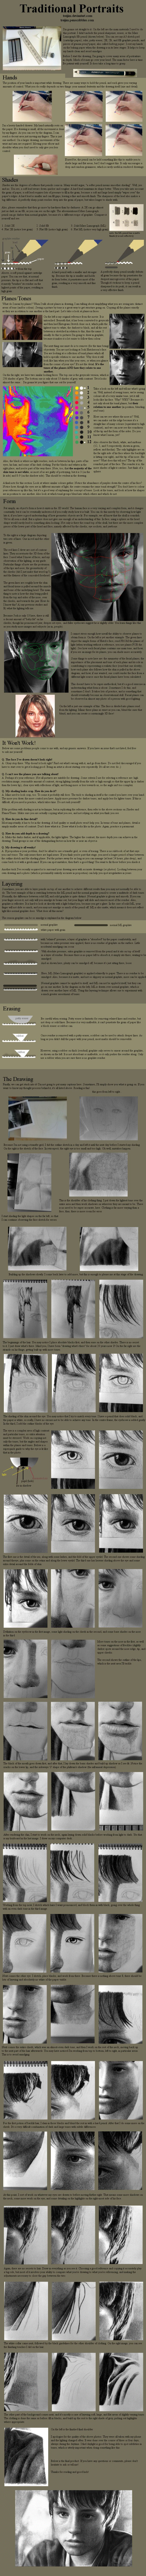 Tutorial - Graphite:Portraits by `treijim on deviantART